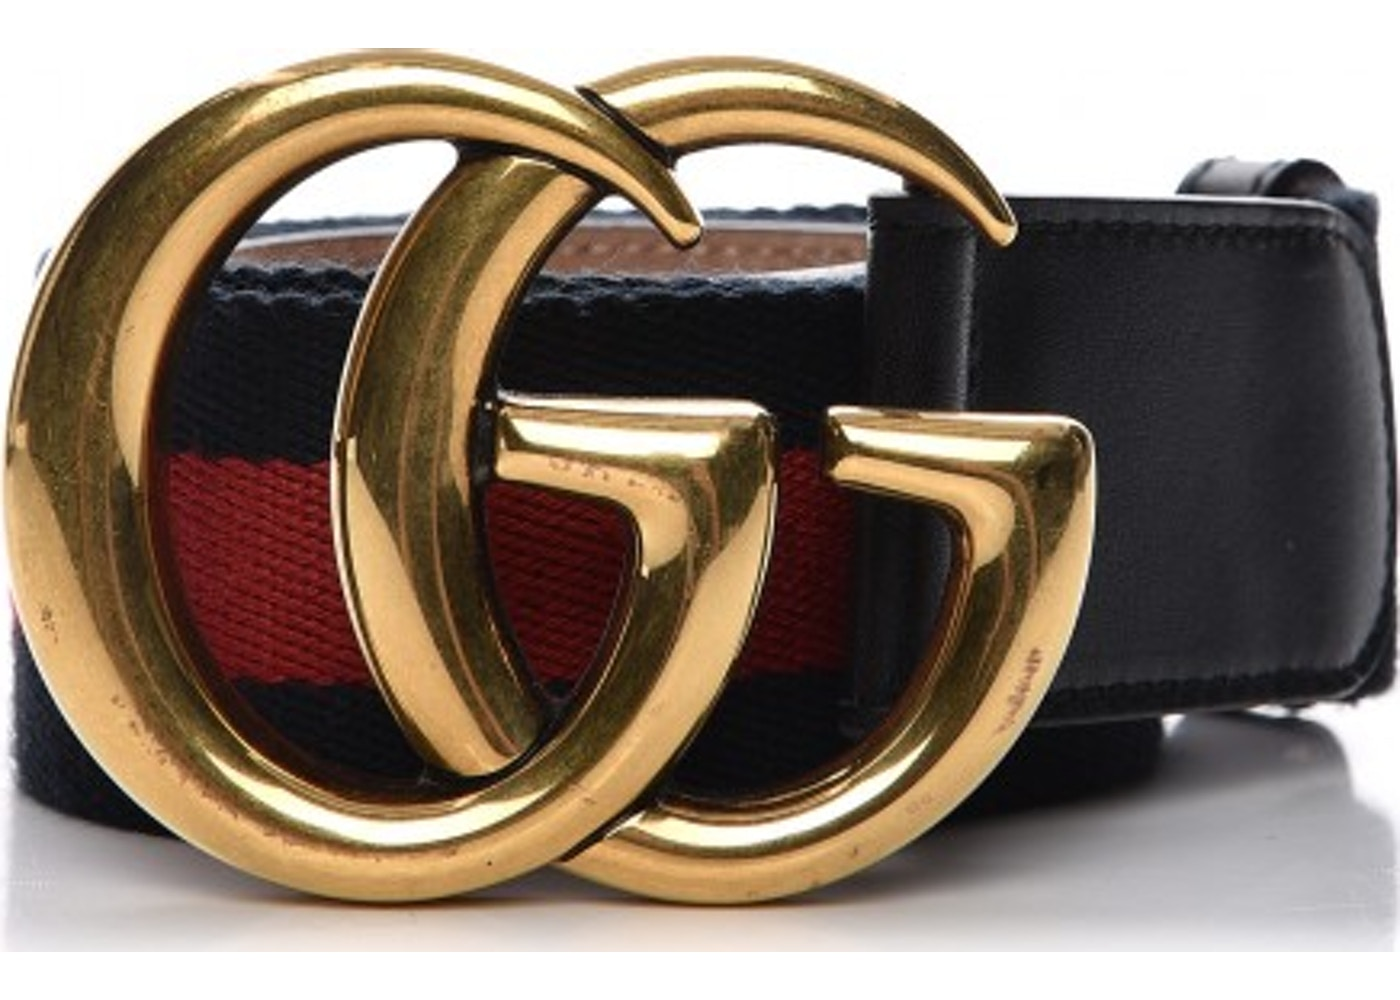 2704828a9 Gucci Mens Double G Belt 100 Web 40 Black/Blue/Red